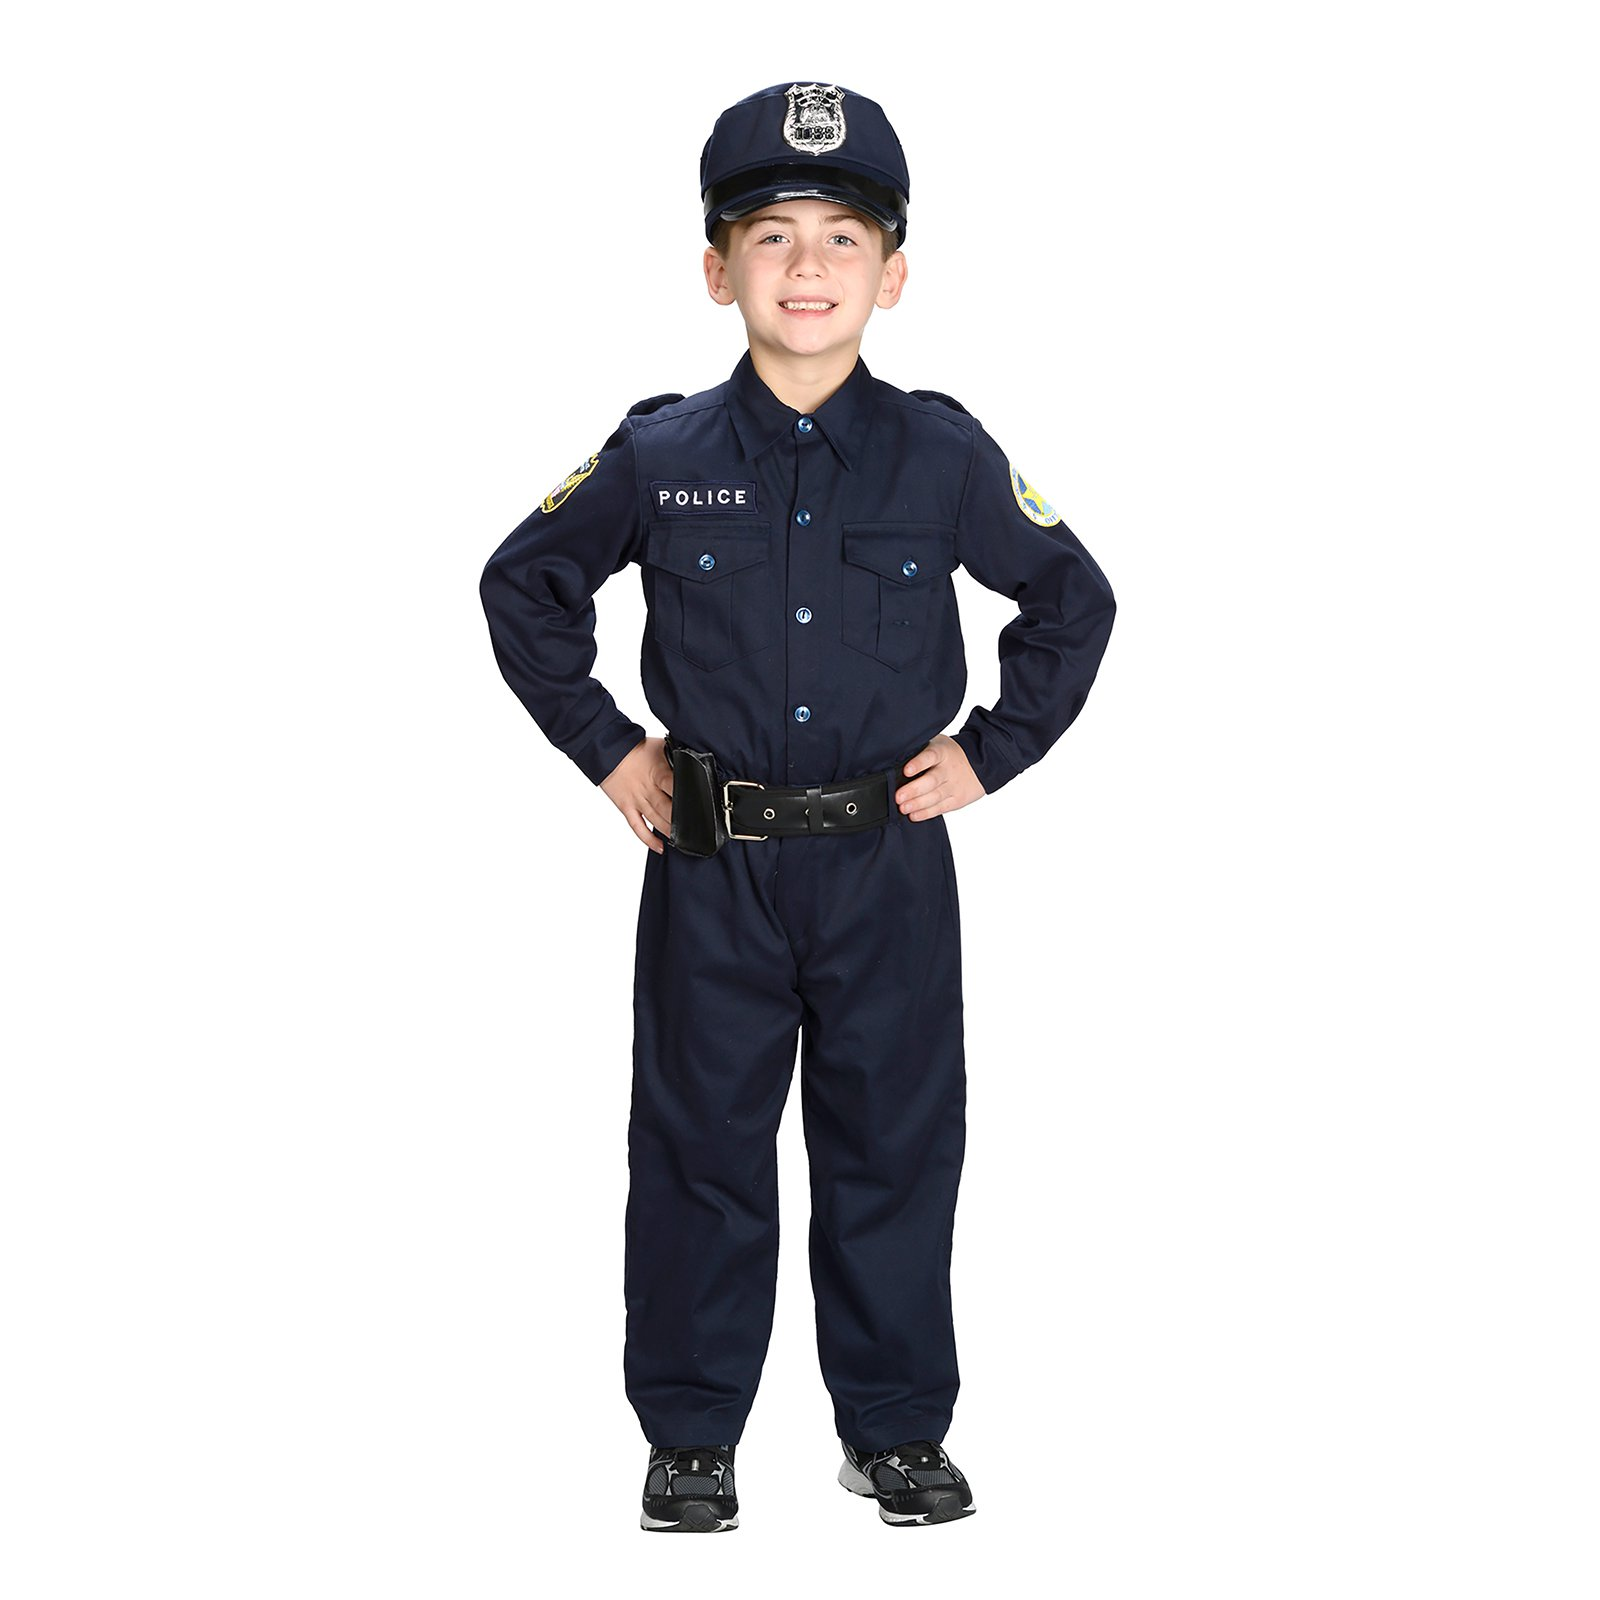 Aeromax Jr. Police Officer Suit Costume by Aeromax, Inc.